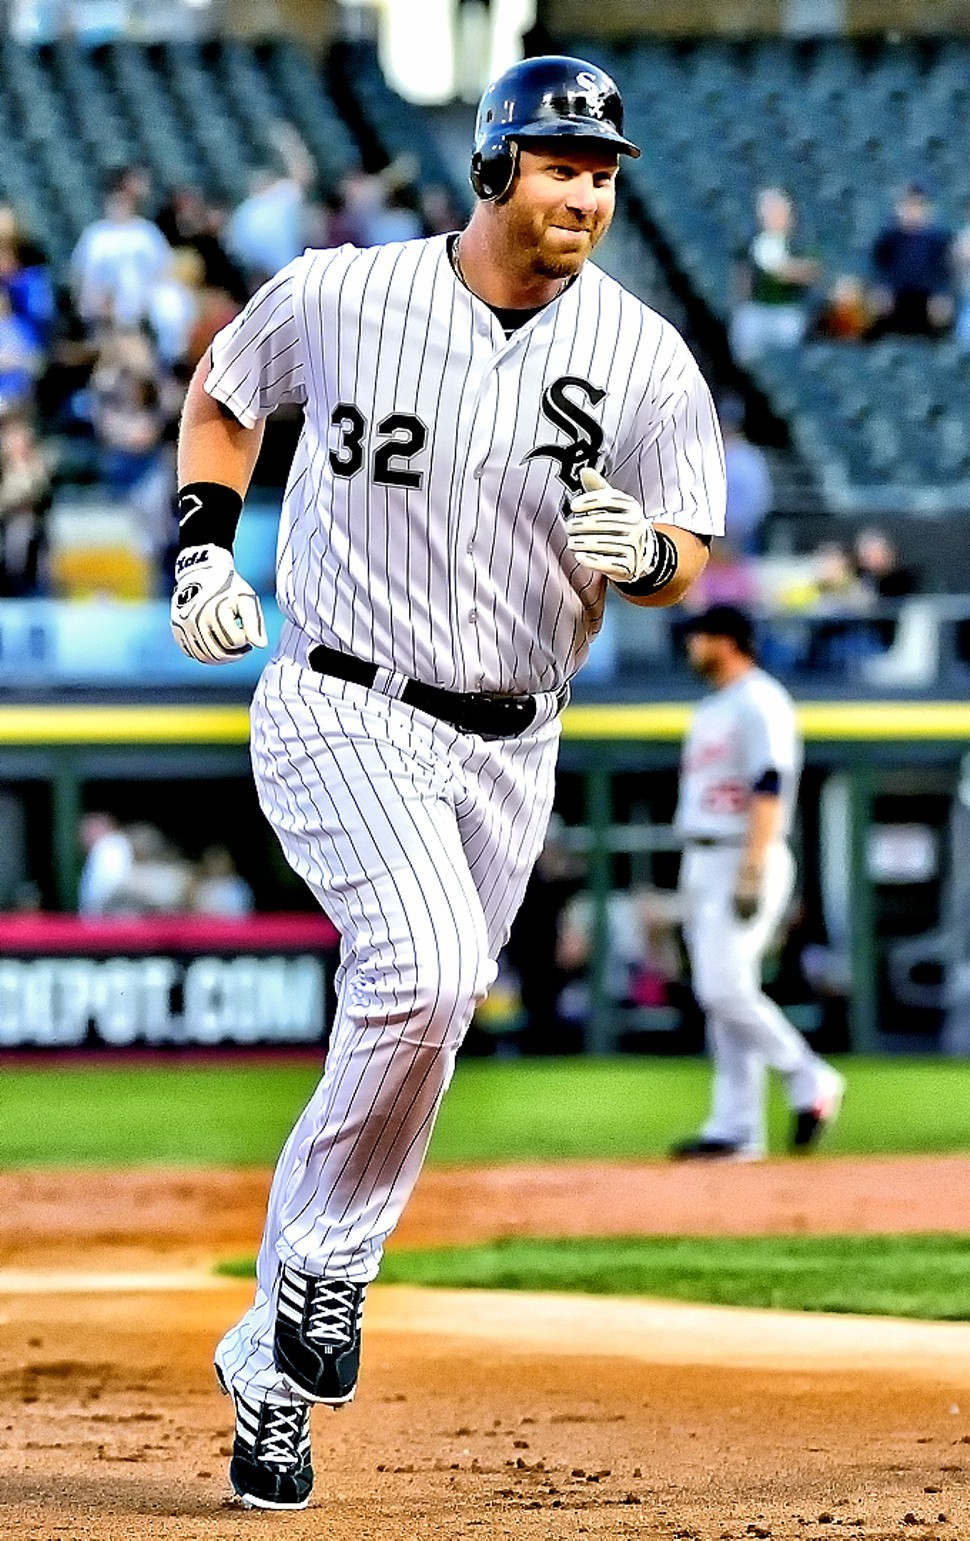 Adam Dunn and the White Sox trot smiling into the second half.